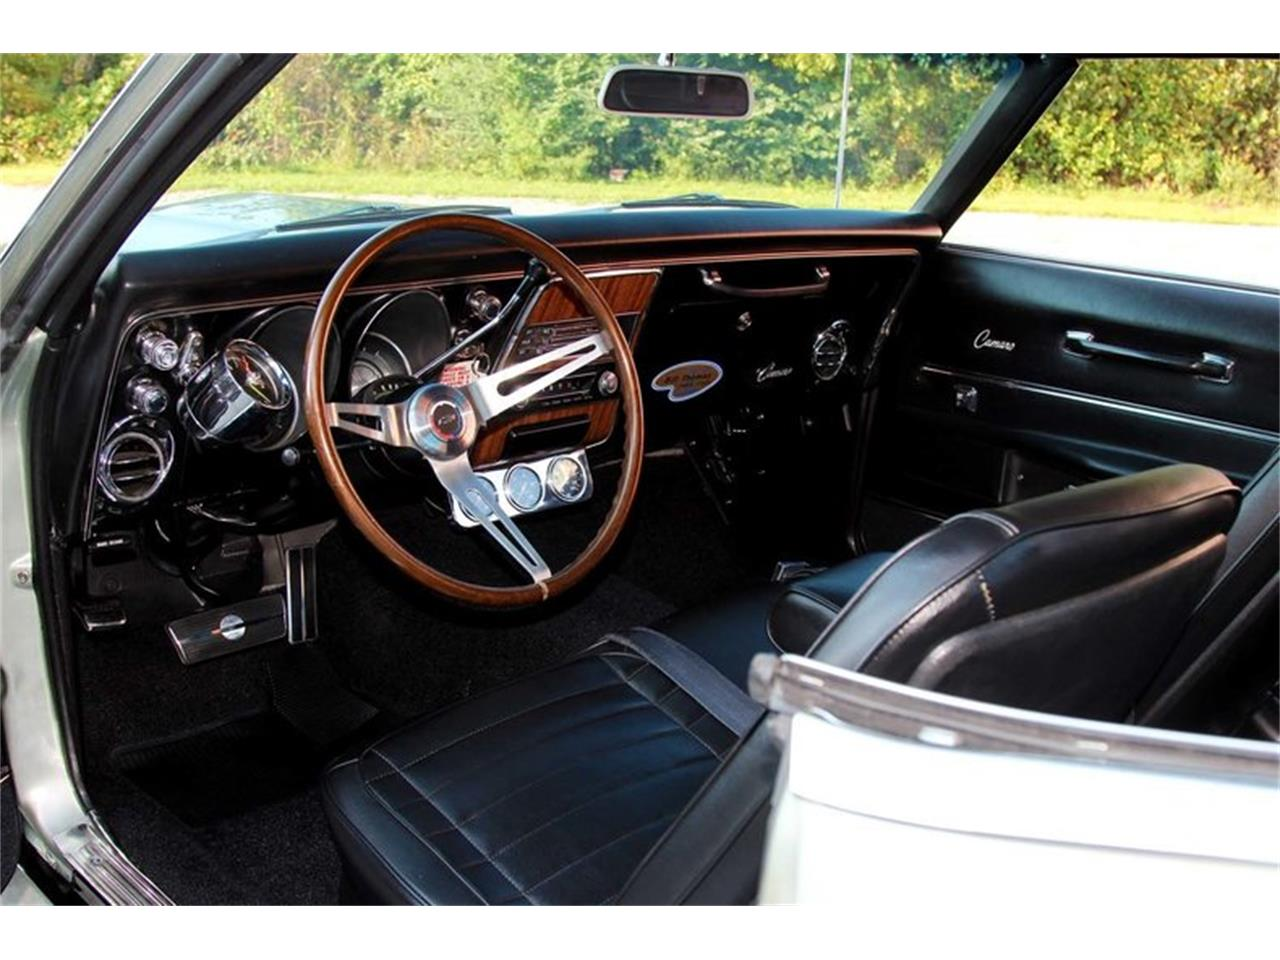 Large Picture of Classic '68 Chevrolet Camaro - $174,995.00 - N6SC